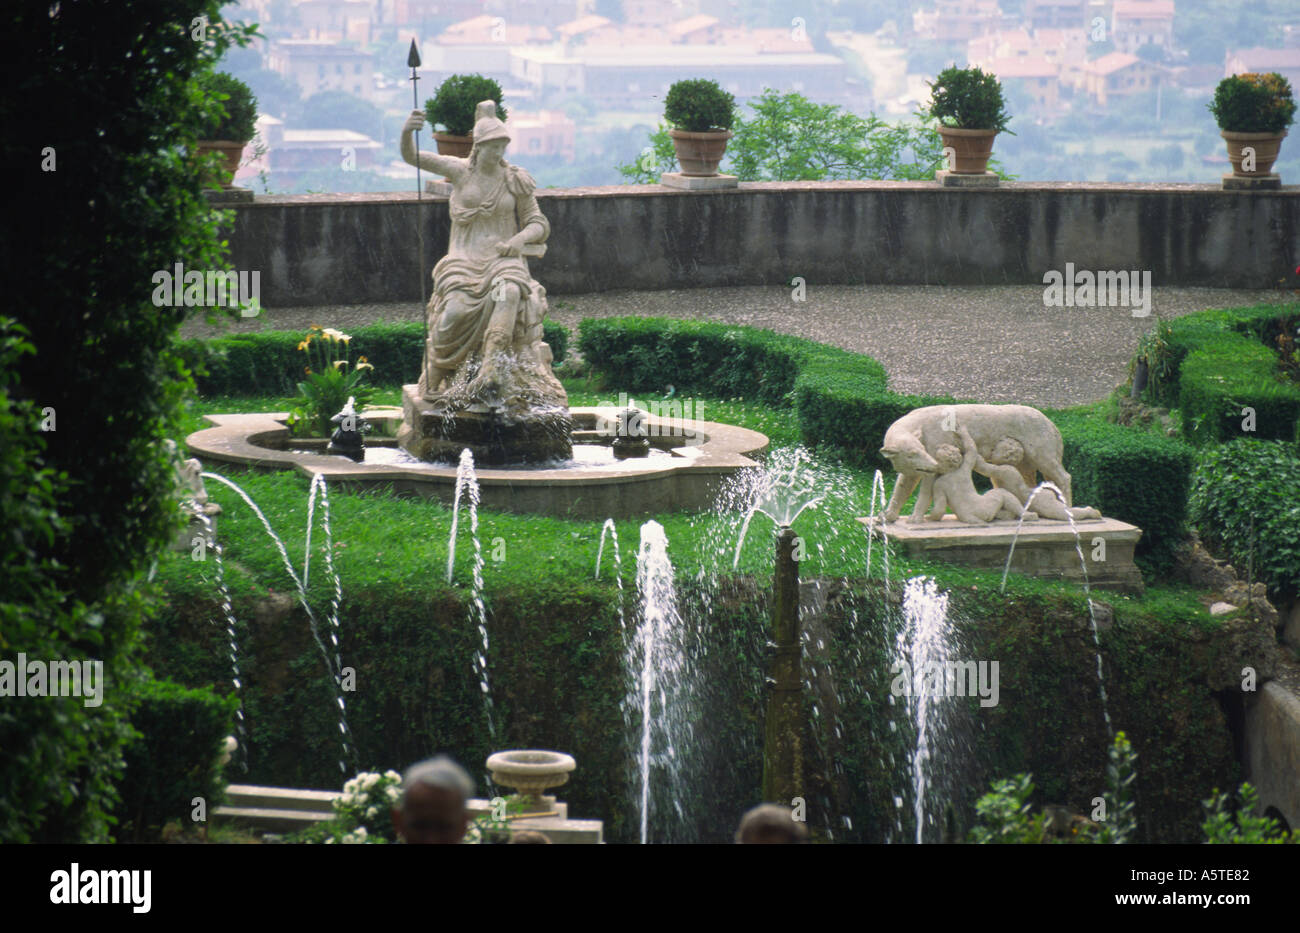 Water Falling Live Wallpaper Download Water Fountains In The Gardens Of Villa D Este Tivoli